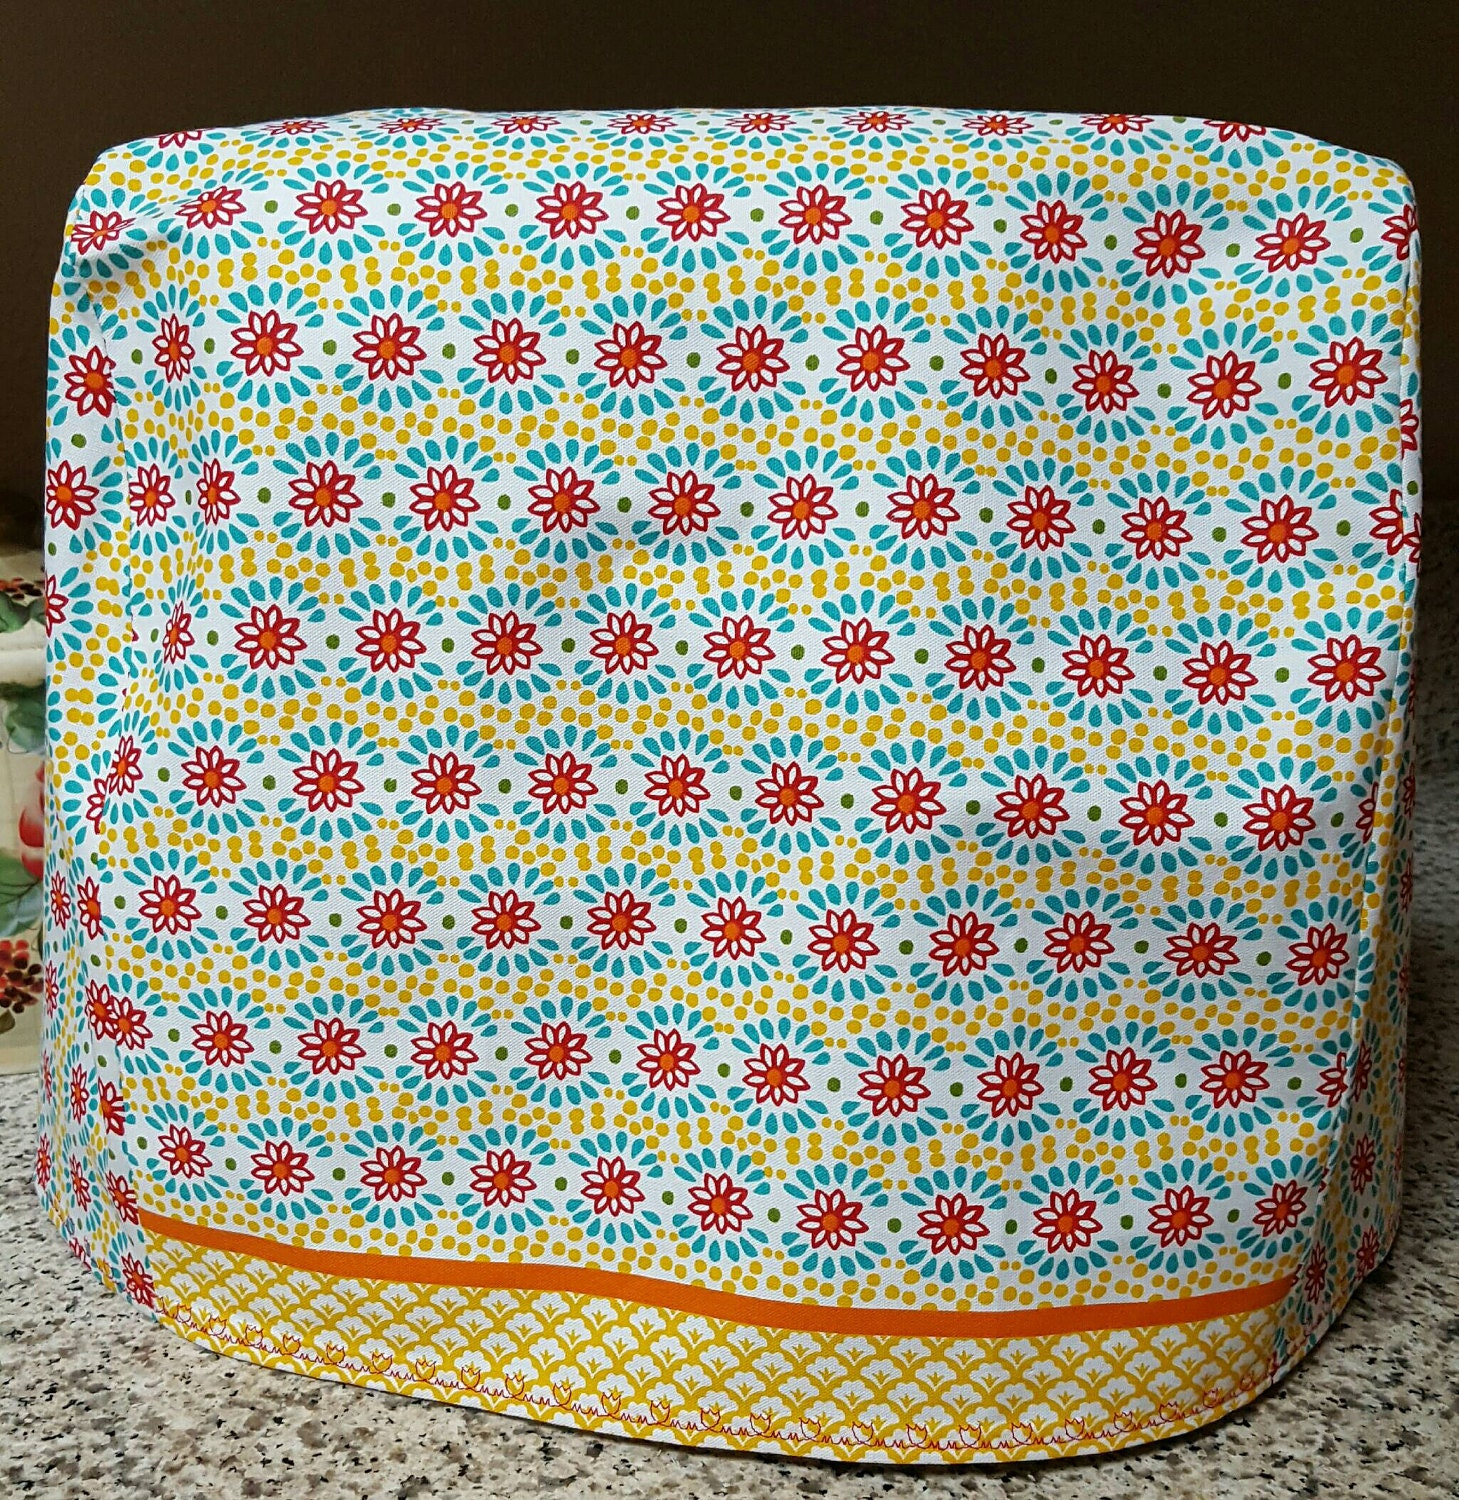 Handmade Simple Fabric Mixer Cover Pioneer Woman Mixer